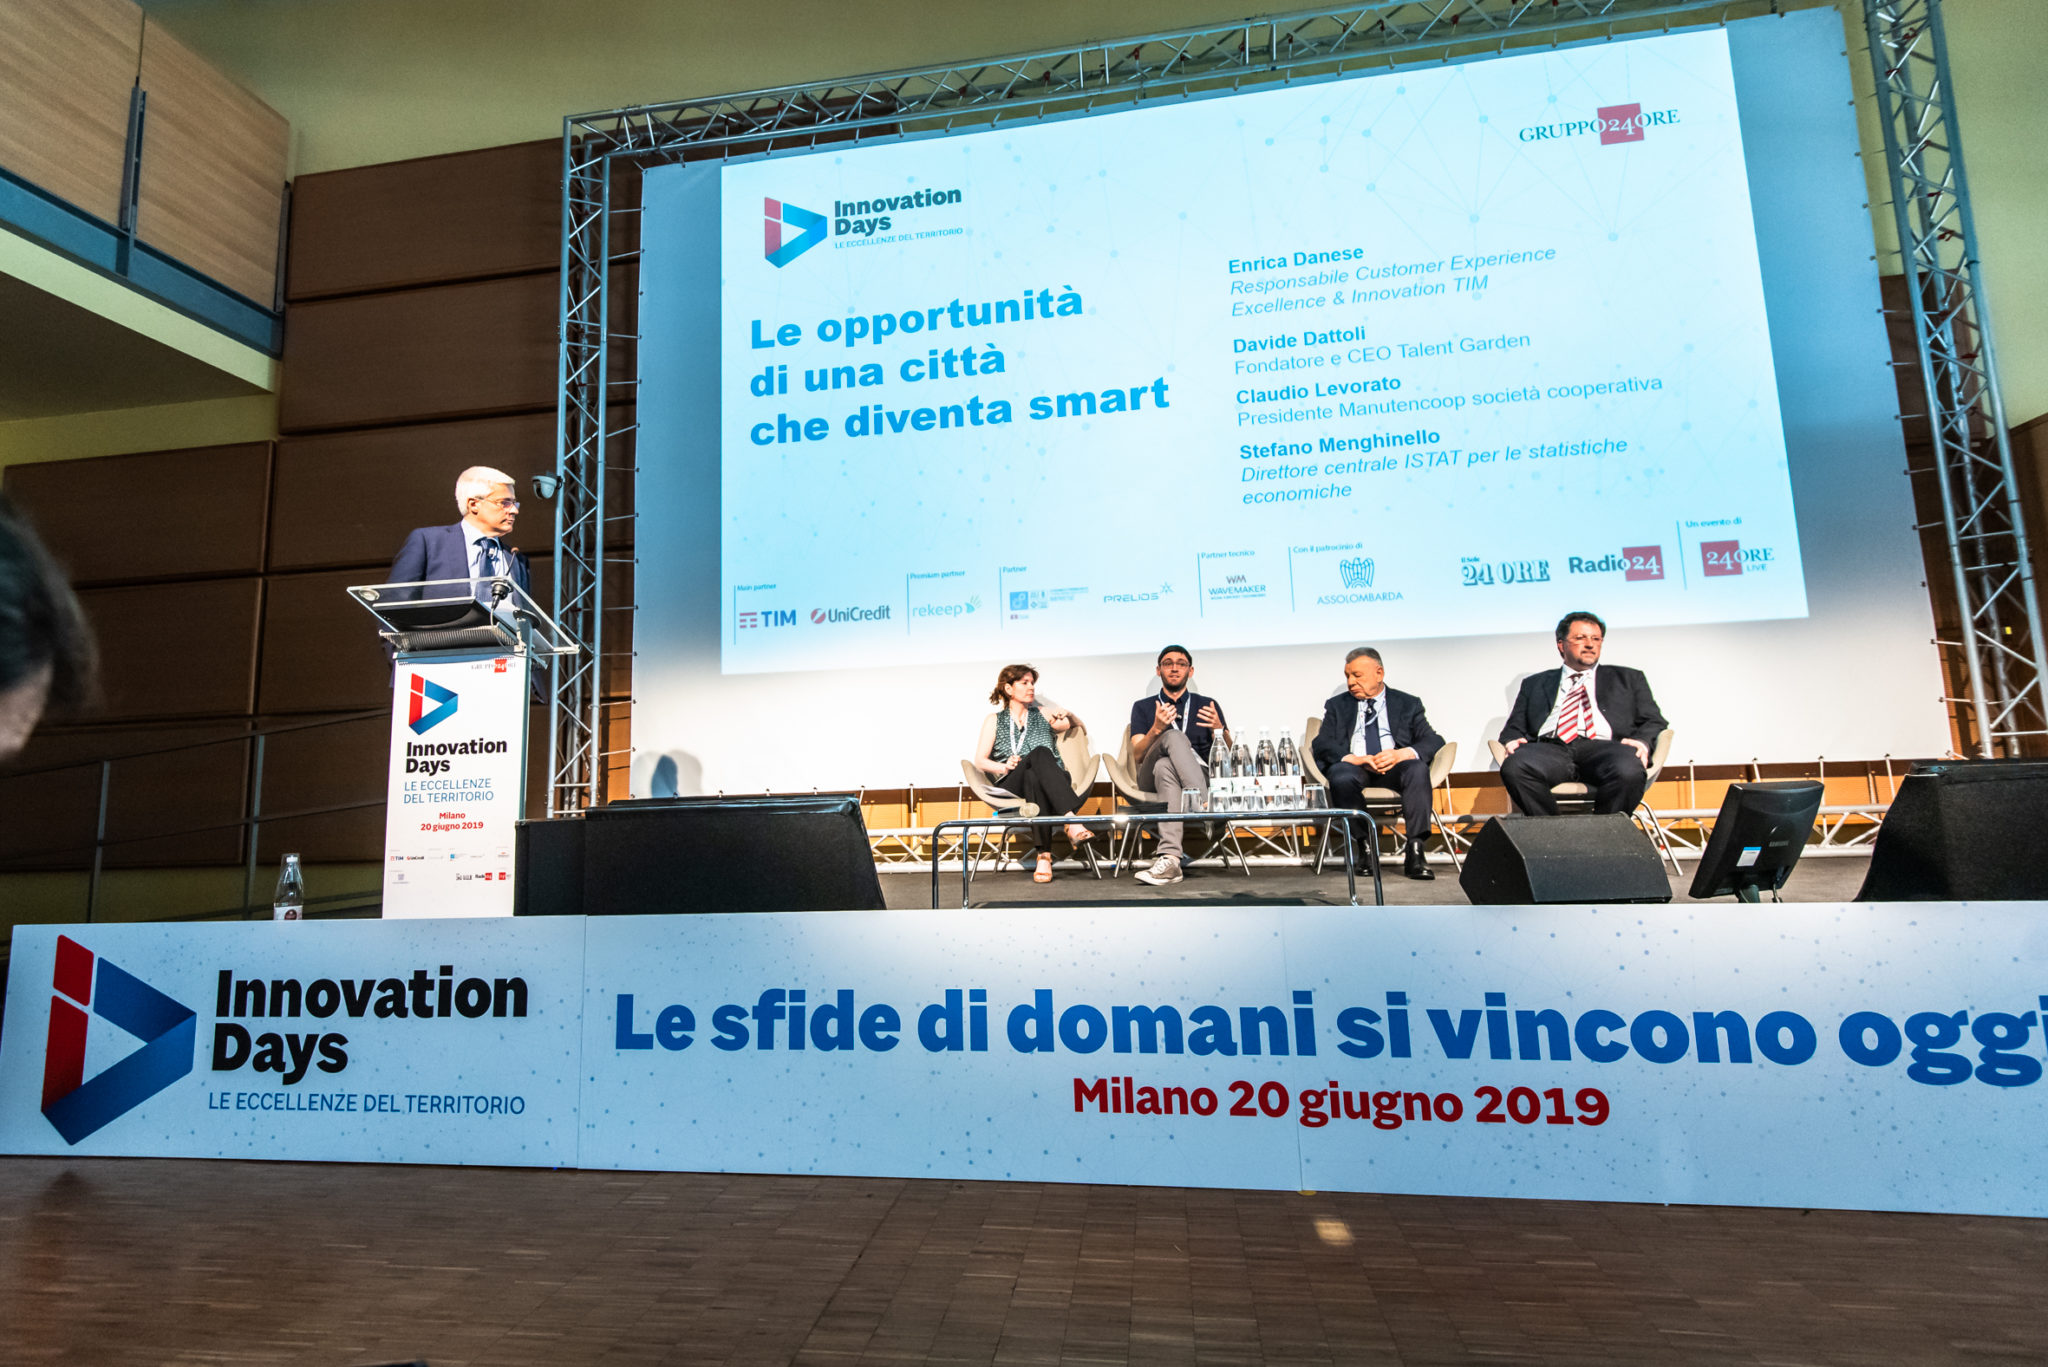 innovation day sole 24 ore